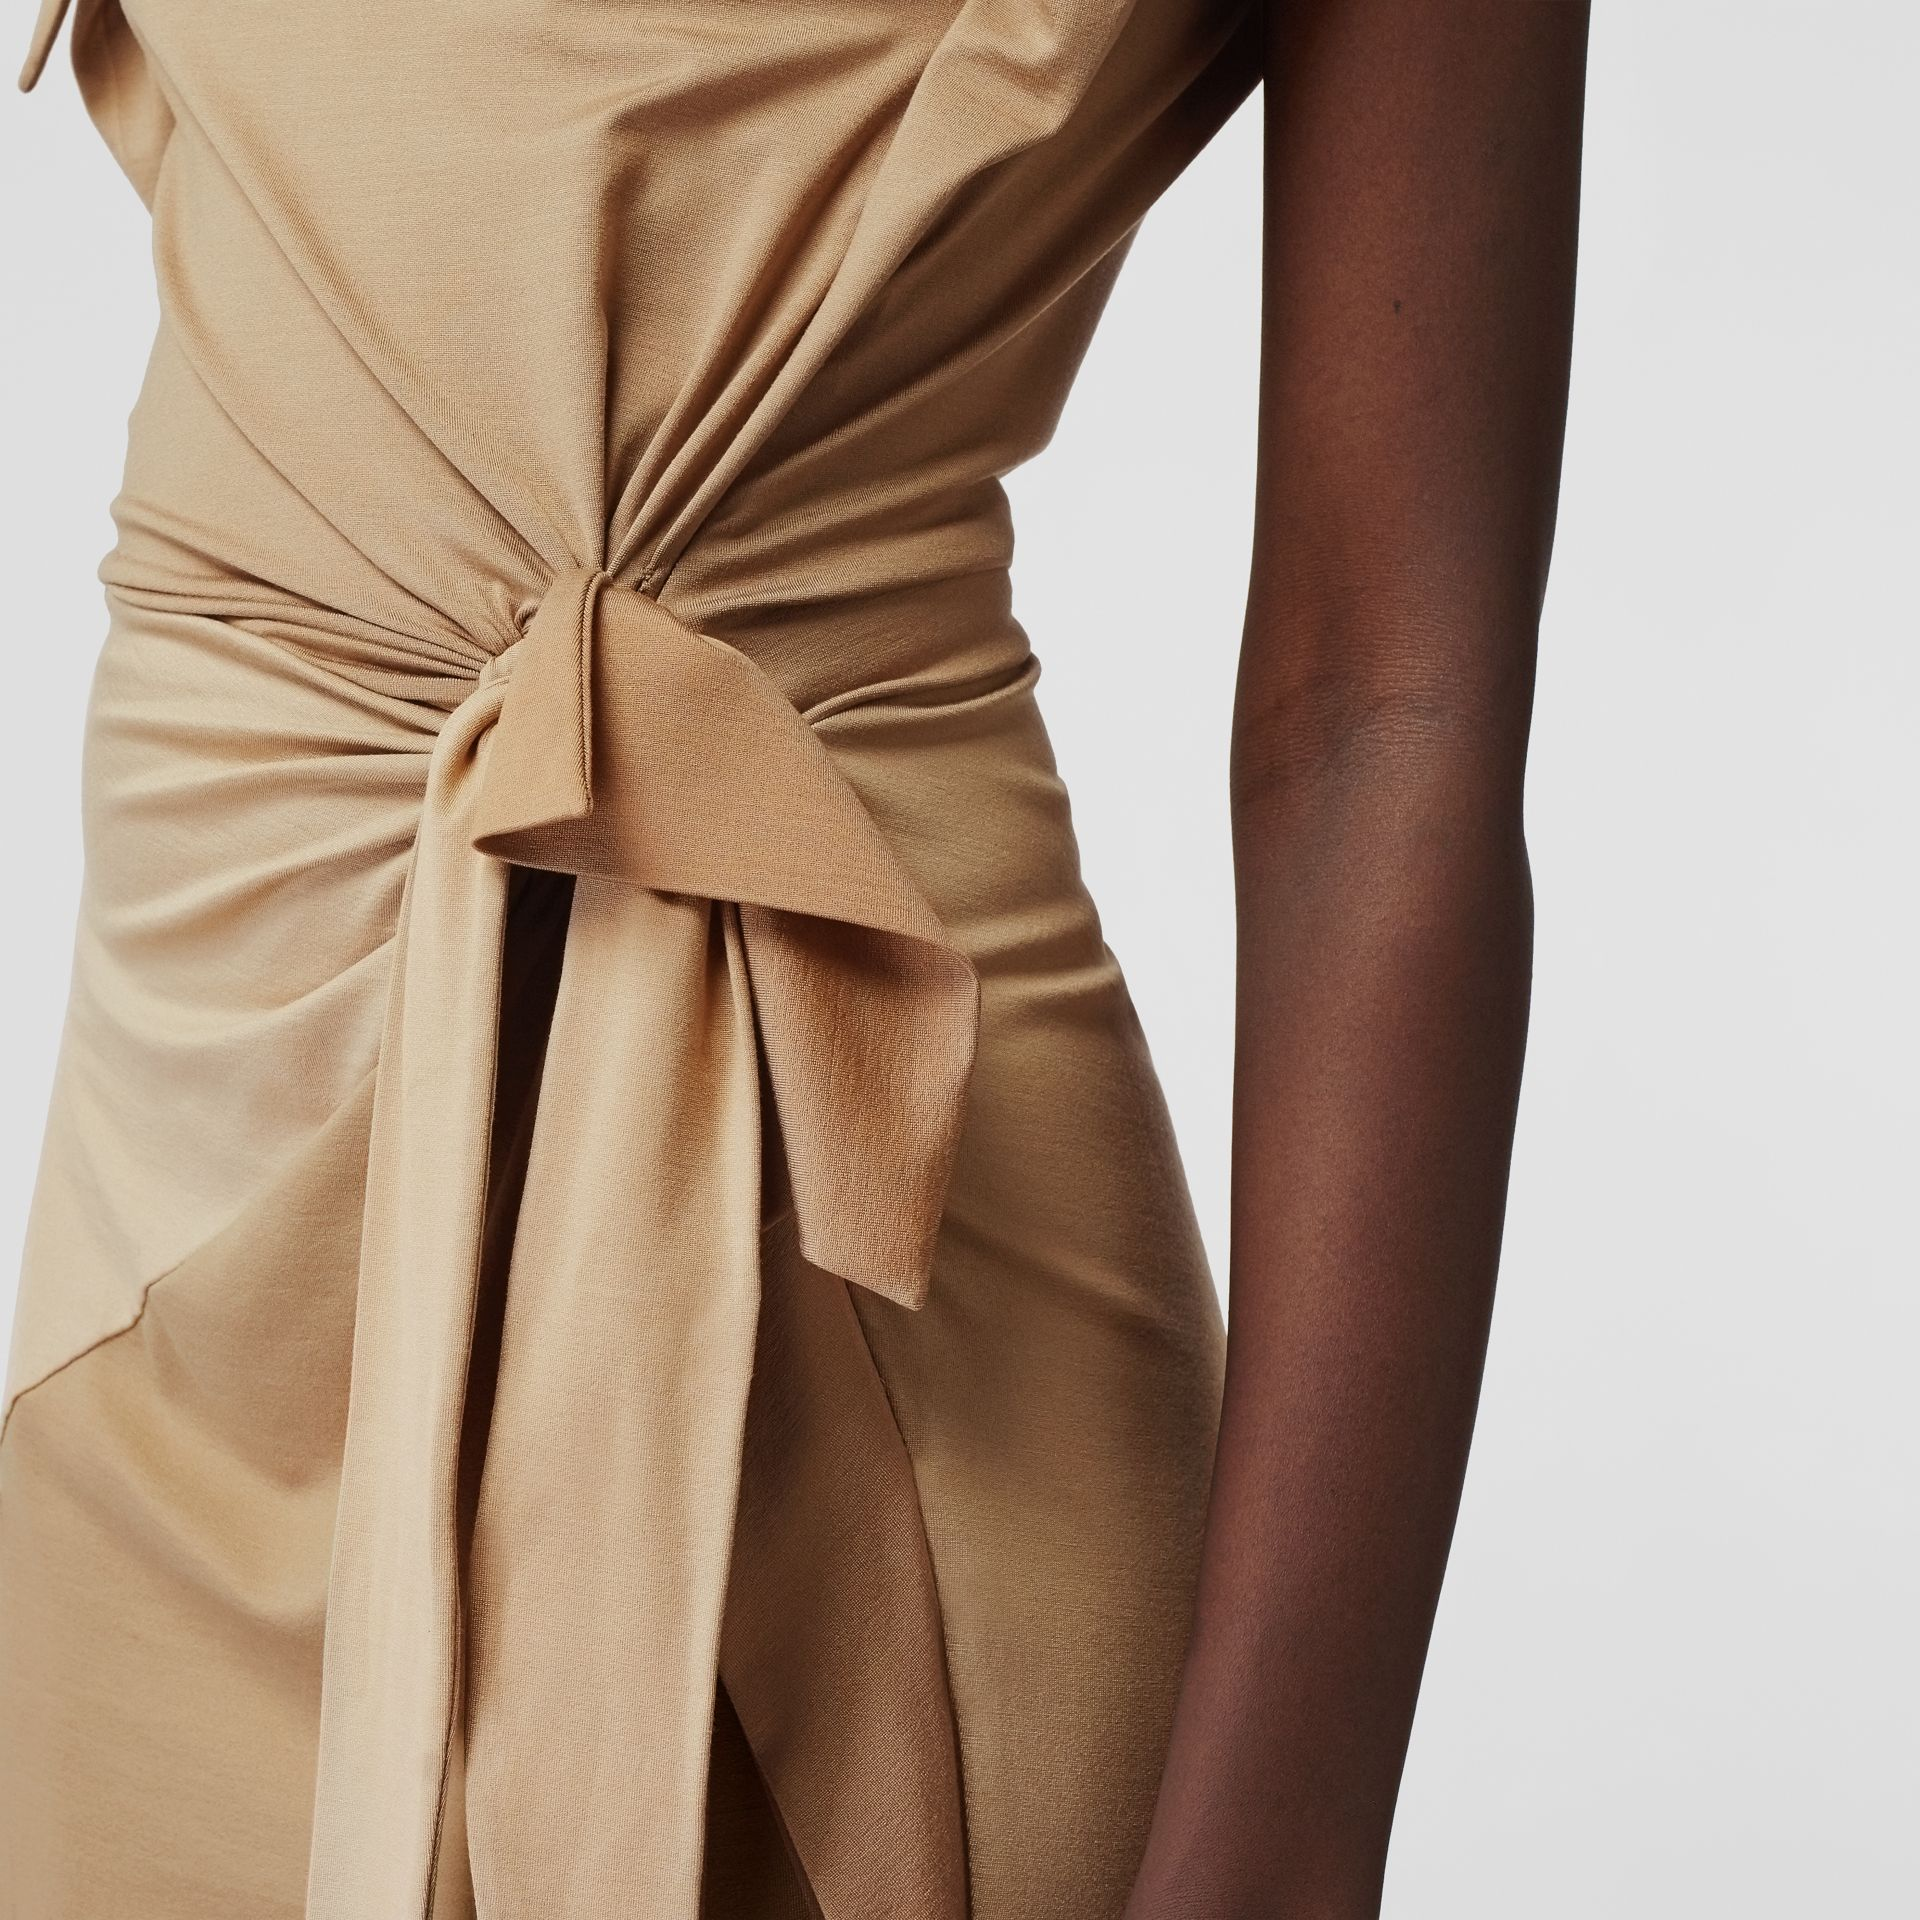 Tie Detail Tri-tone Silk Jersey Dress in Wheat - Women | Burberry United Kingdom - gallery image 6